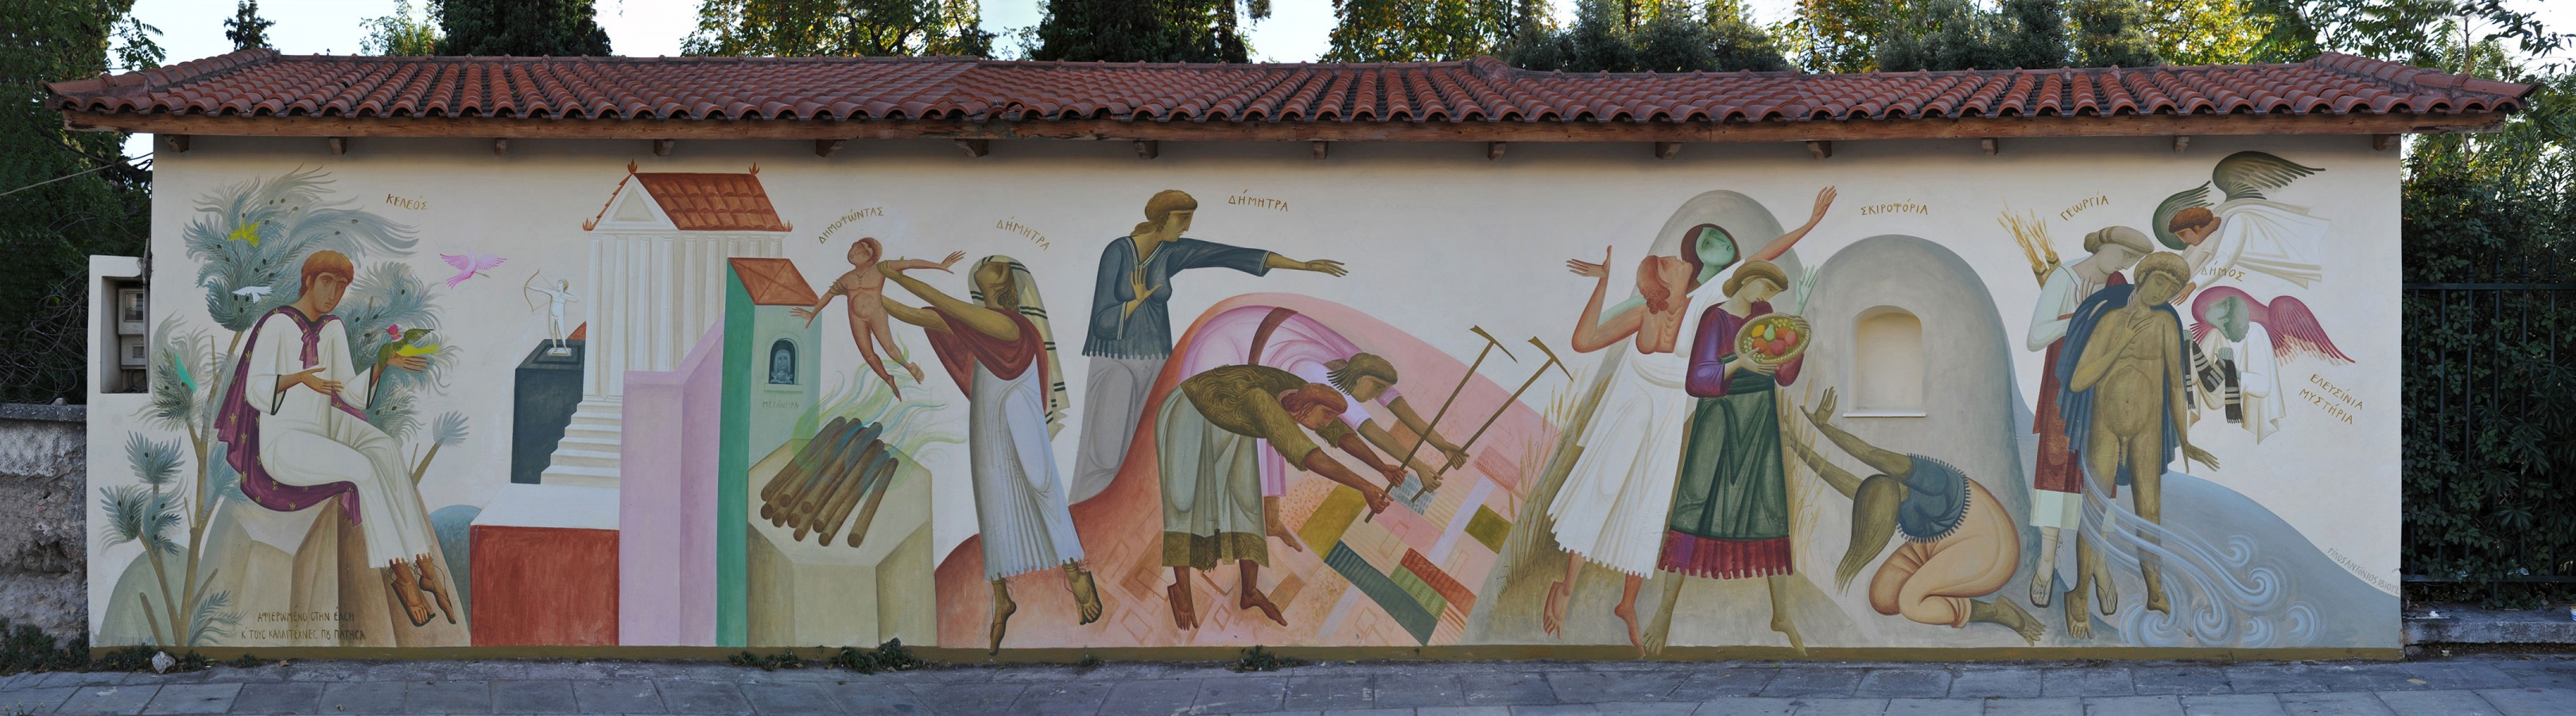 The Formation of the Demos (municipality) in Athens, by Fikos, 2012. Acrylic colors on wall, 14.5×3.3 m. Sacred Way (Iera Odos), blind side of a warehouse at the Agricultural Department of the University of Athens.